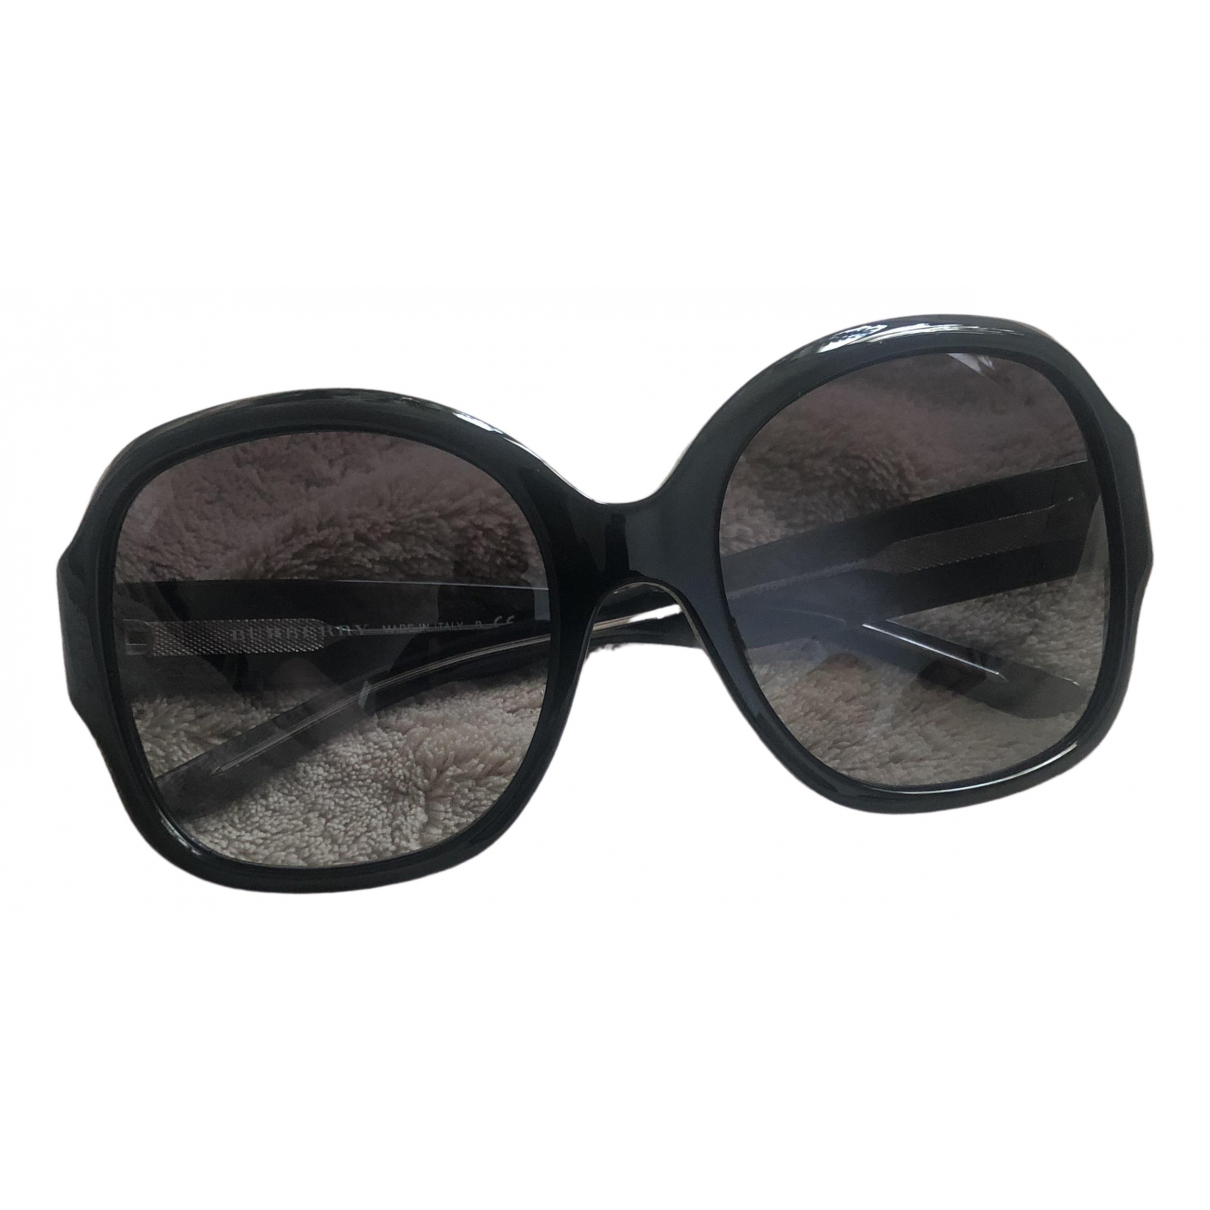 Burberry N Black Sunglasses for Women N